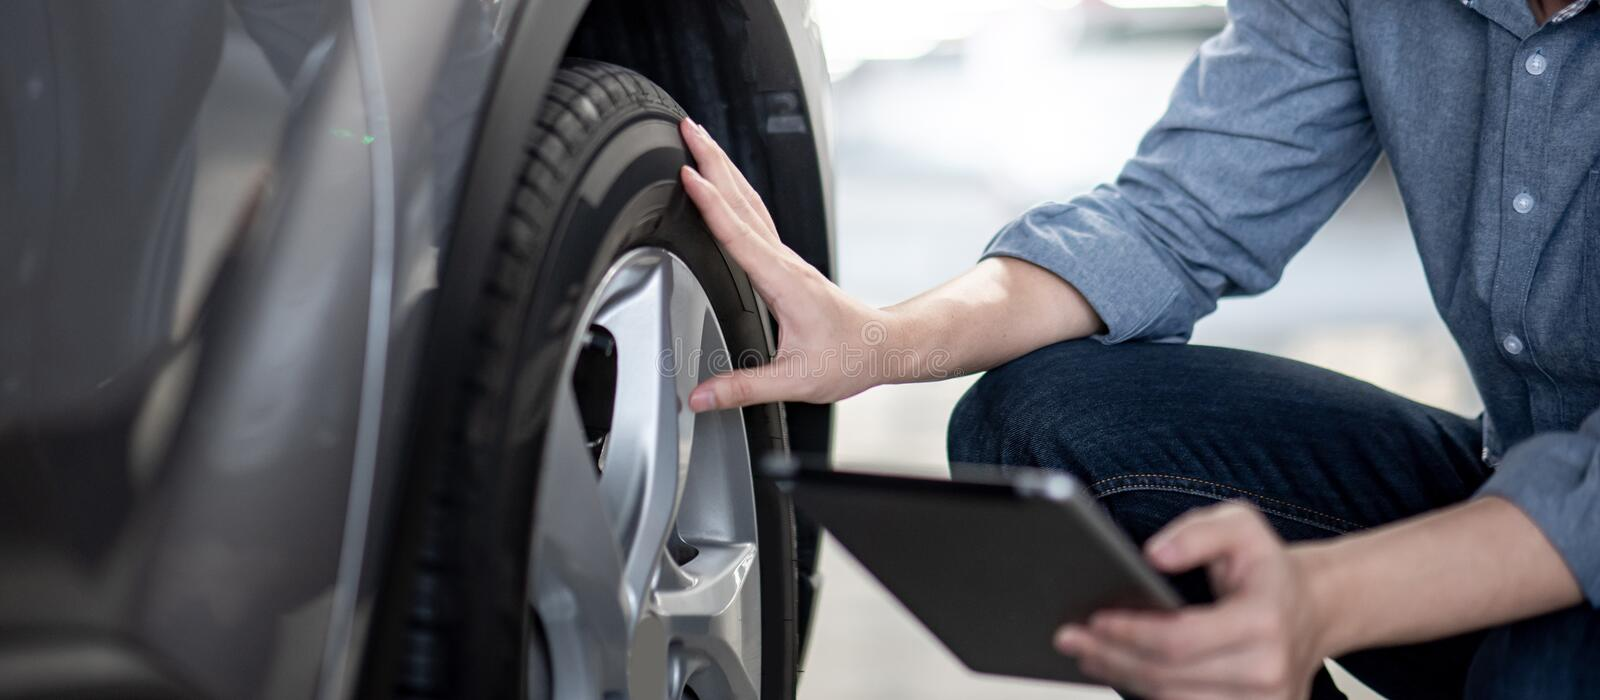 Auto mechanic checking the car using tablet. Asian auto mechanic holding digital tablet checking car wheel in auto service garage. Mechanical maintenance royalty free stock images